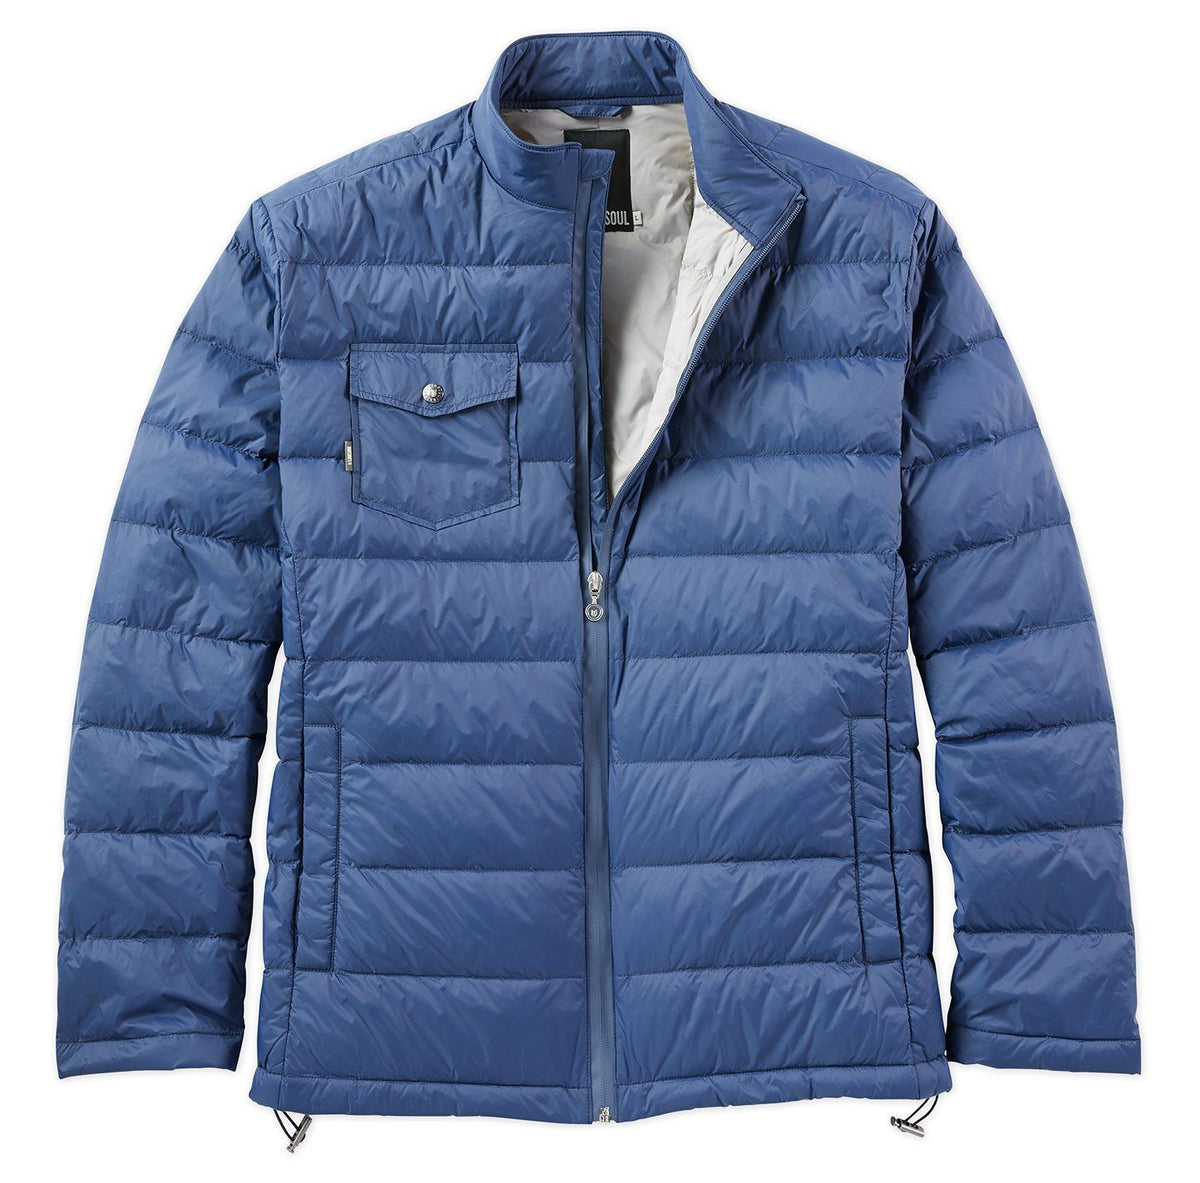 Hilgard Quilted Down Jacket